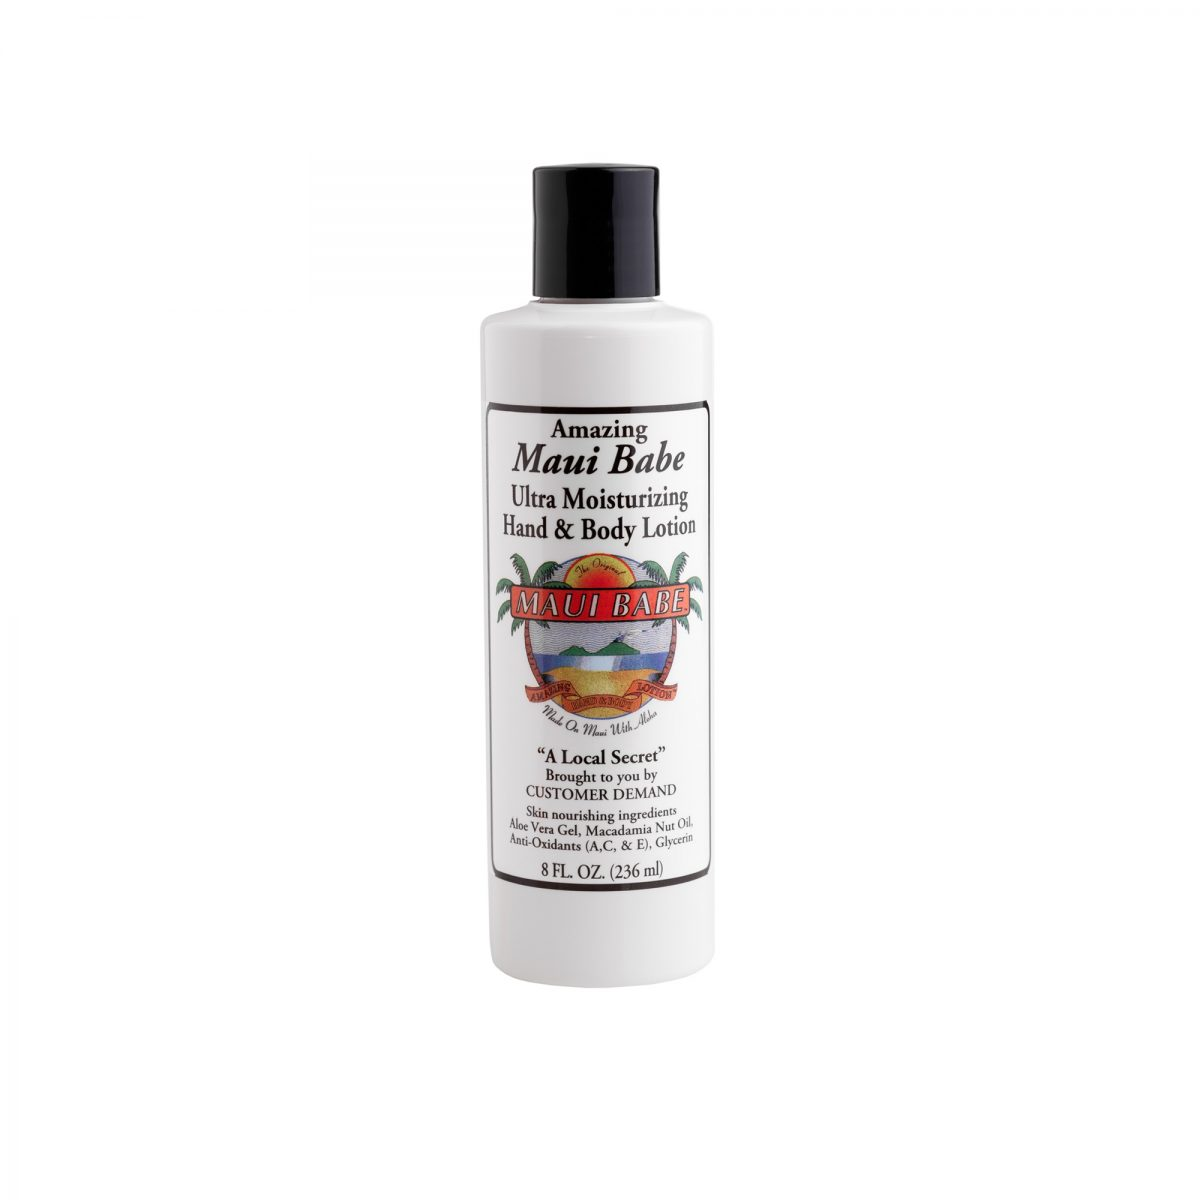 8oz Hand and Body Lotion